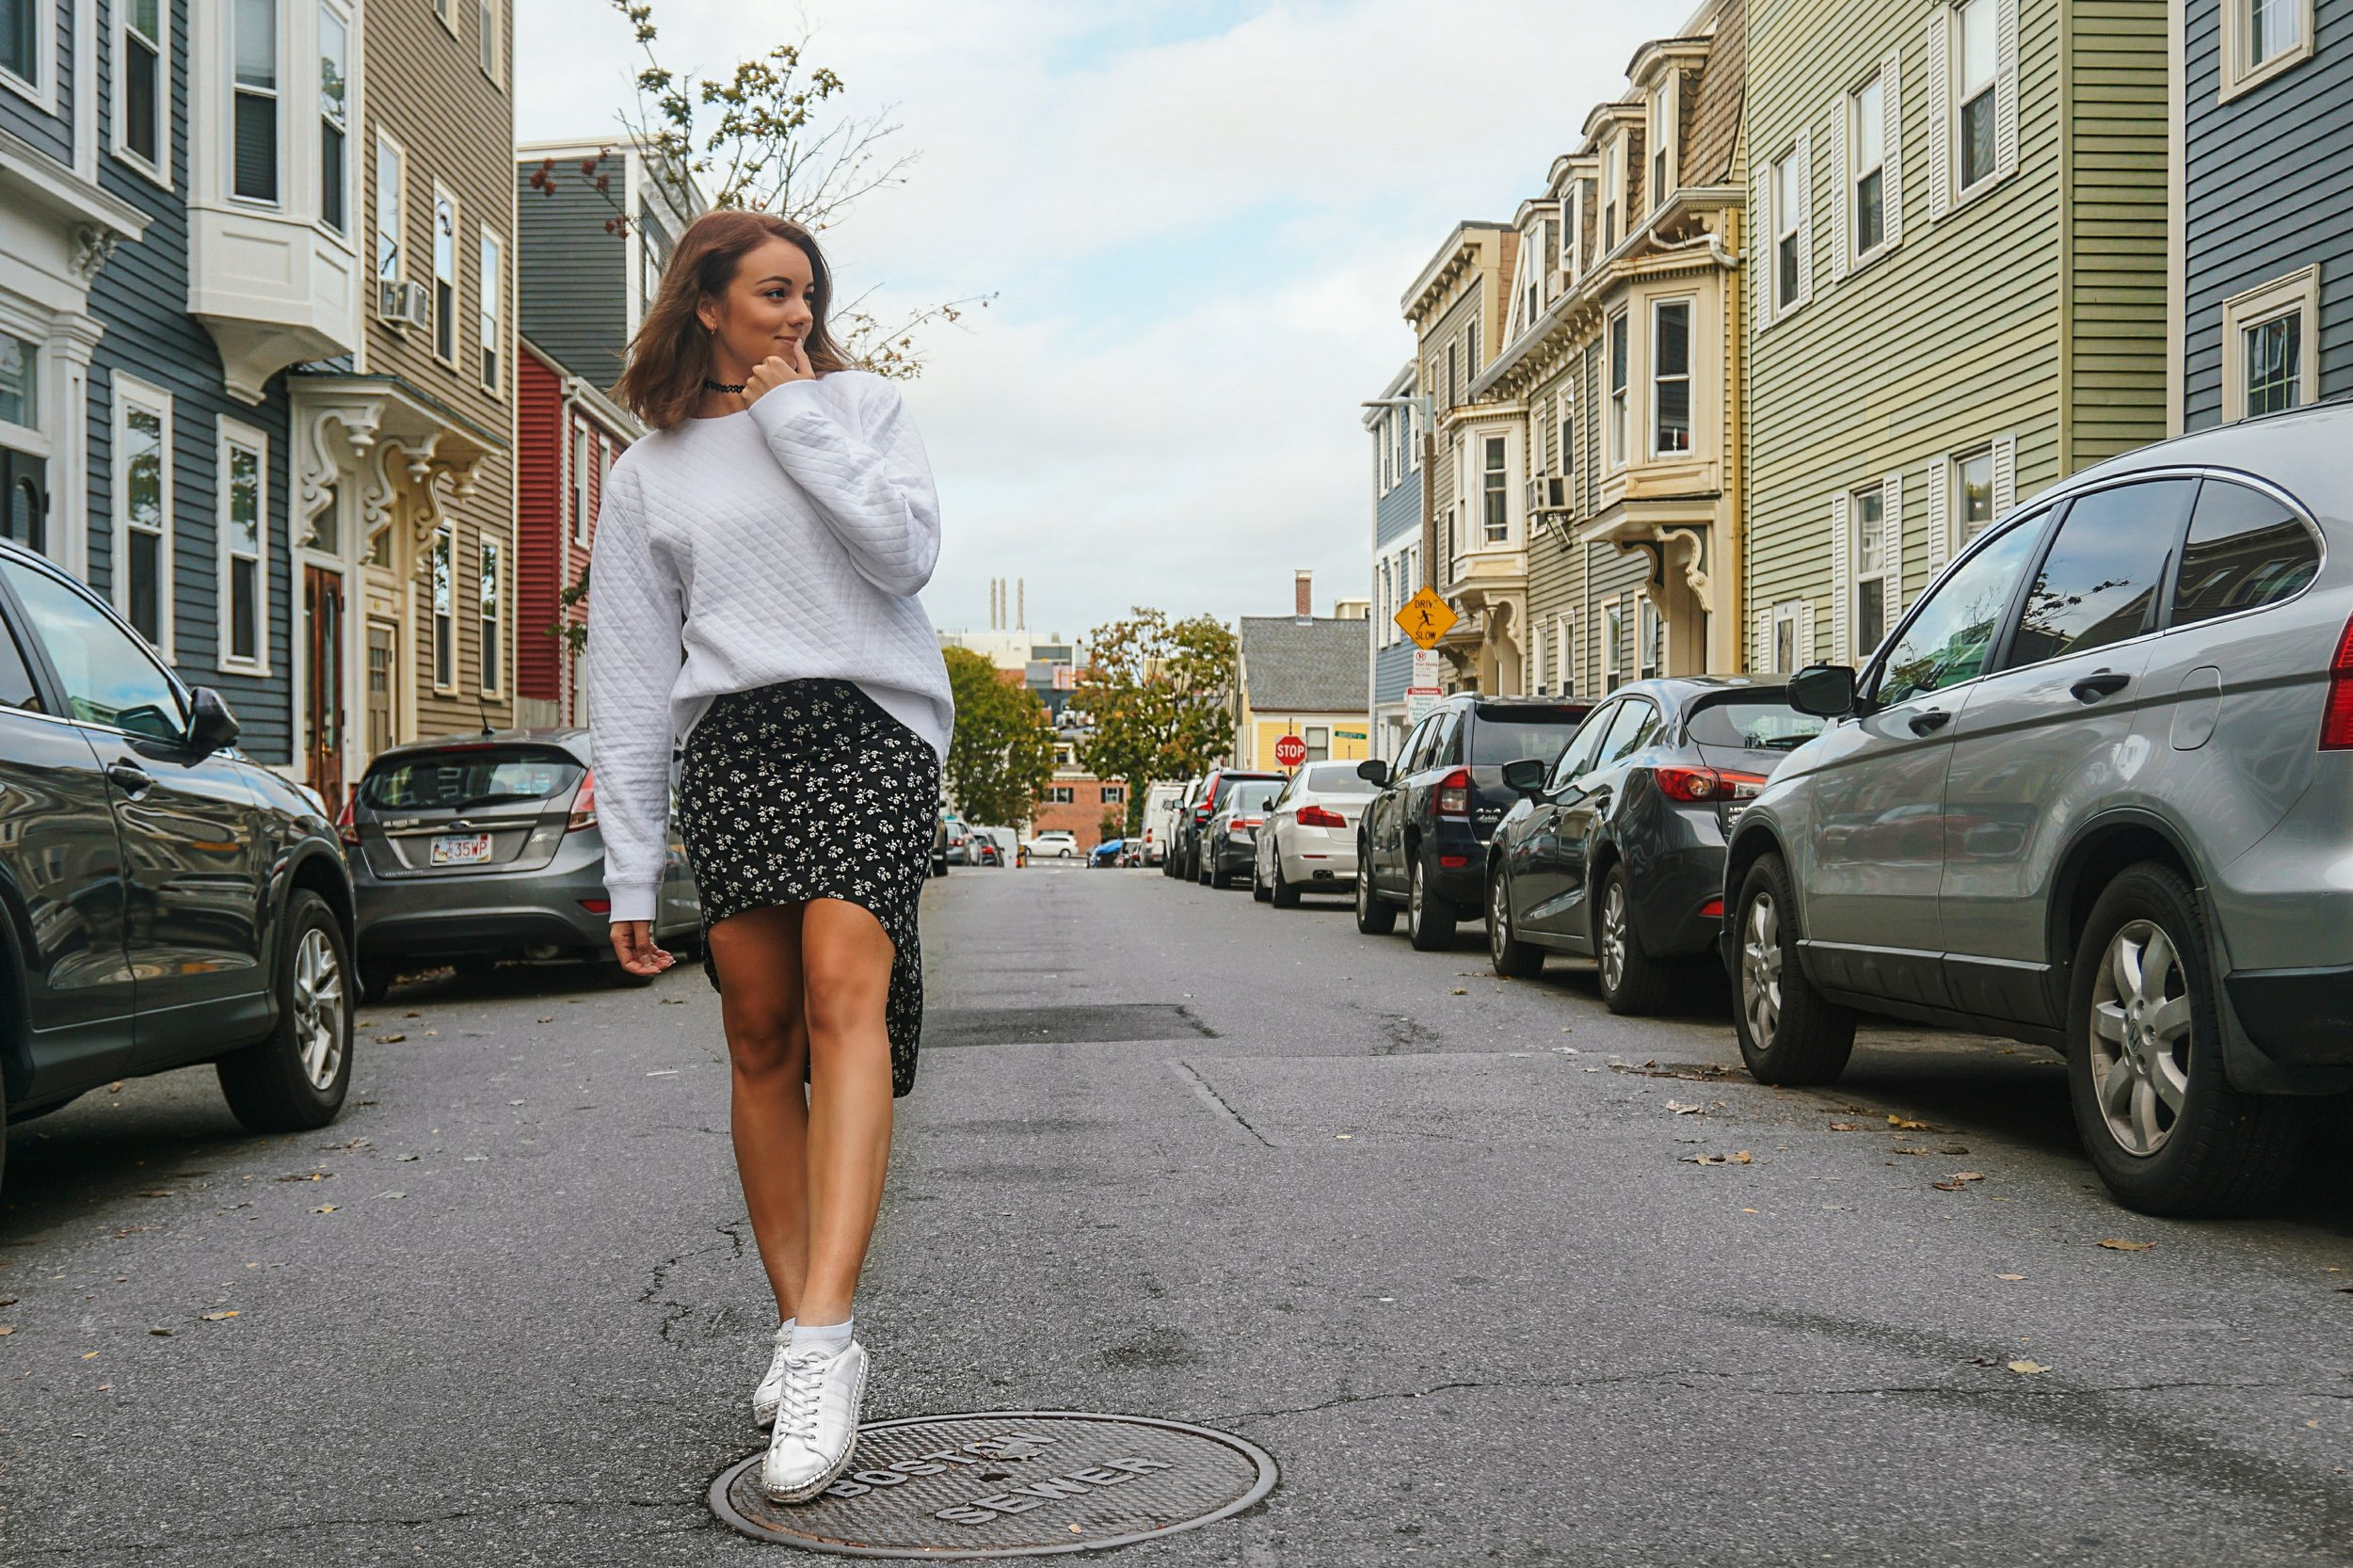 A Boston blogger wearing an oversized white sweatshirt, black skirt, and white sneakers.